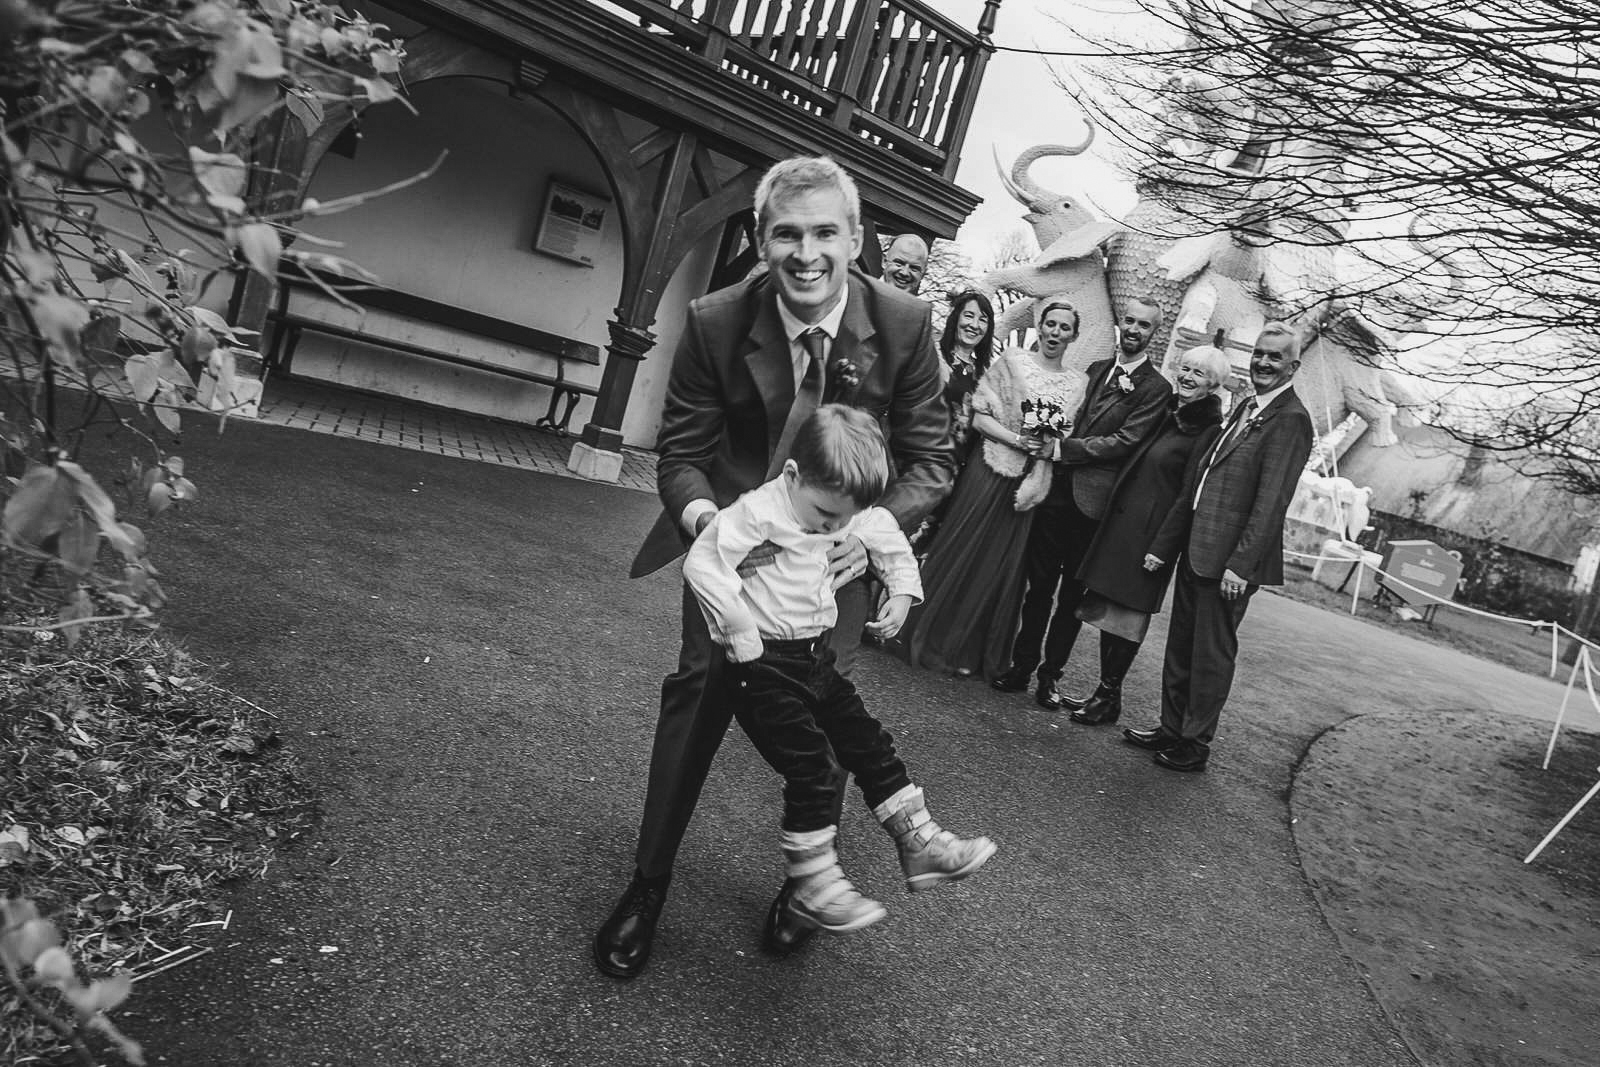 Roger_kenny-wedding-photographer-wicklow-dublin-zoo_053.jpg